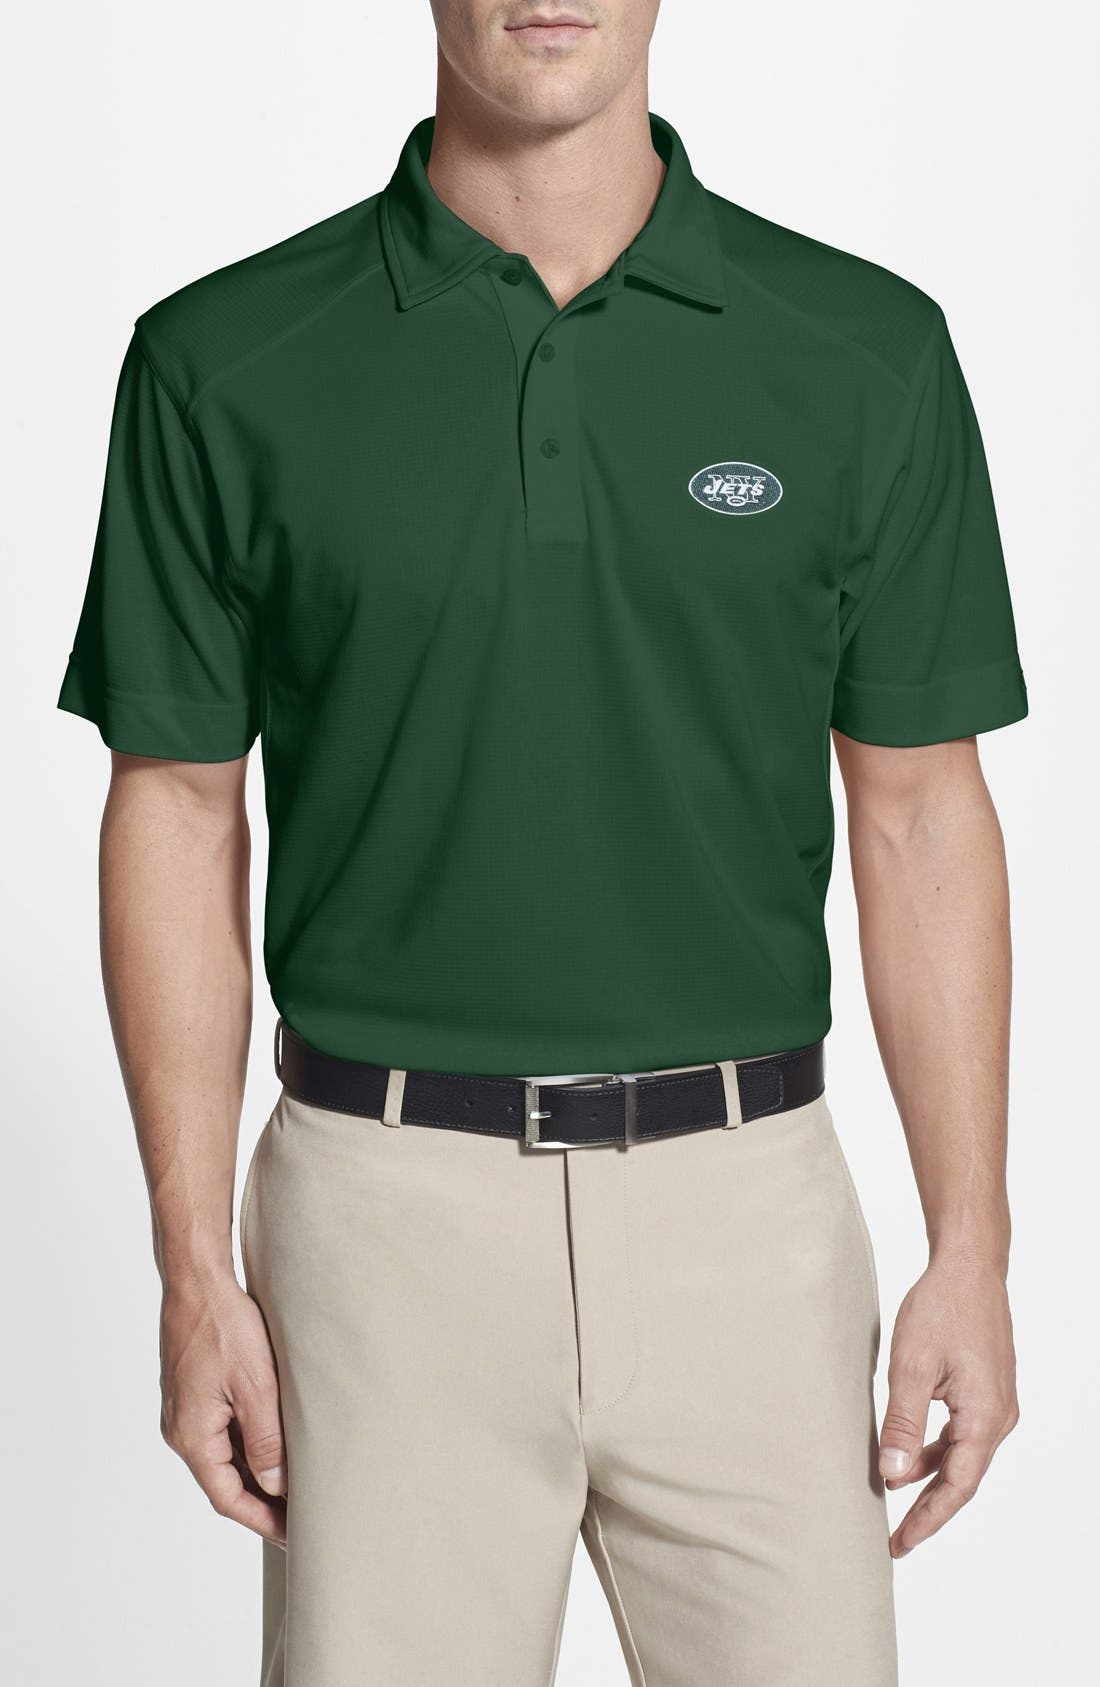 Cutter & Buck 'New York Jets - Genre' DryTec Moisture Wicking Polo (Big & Tall)